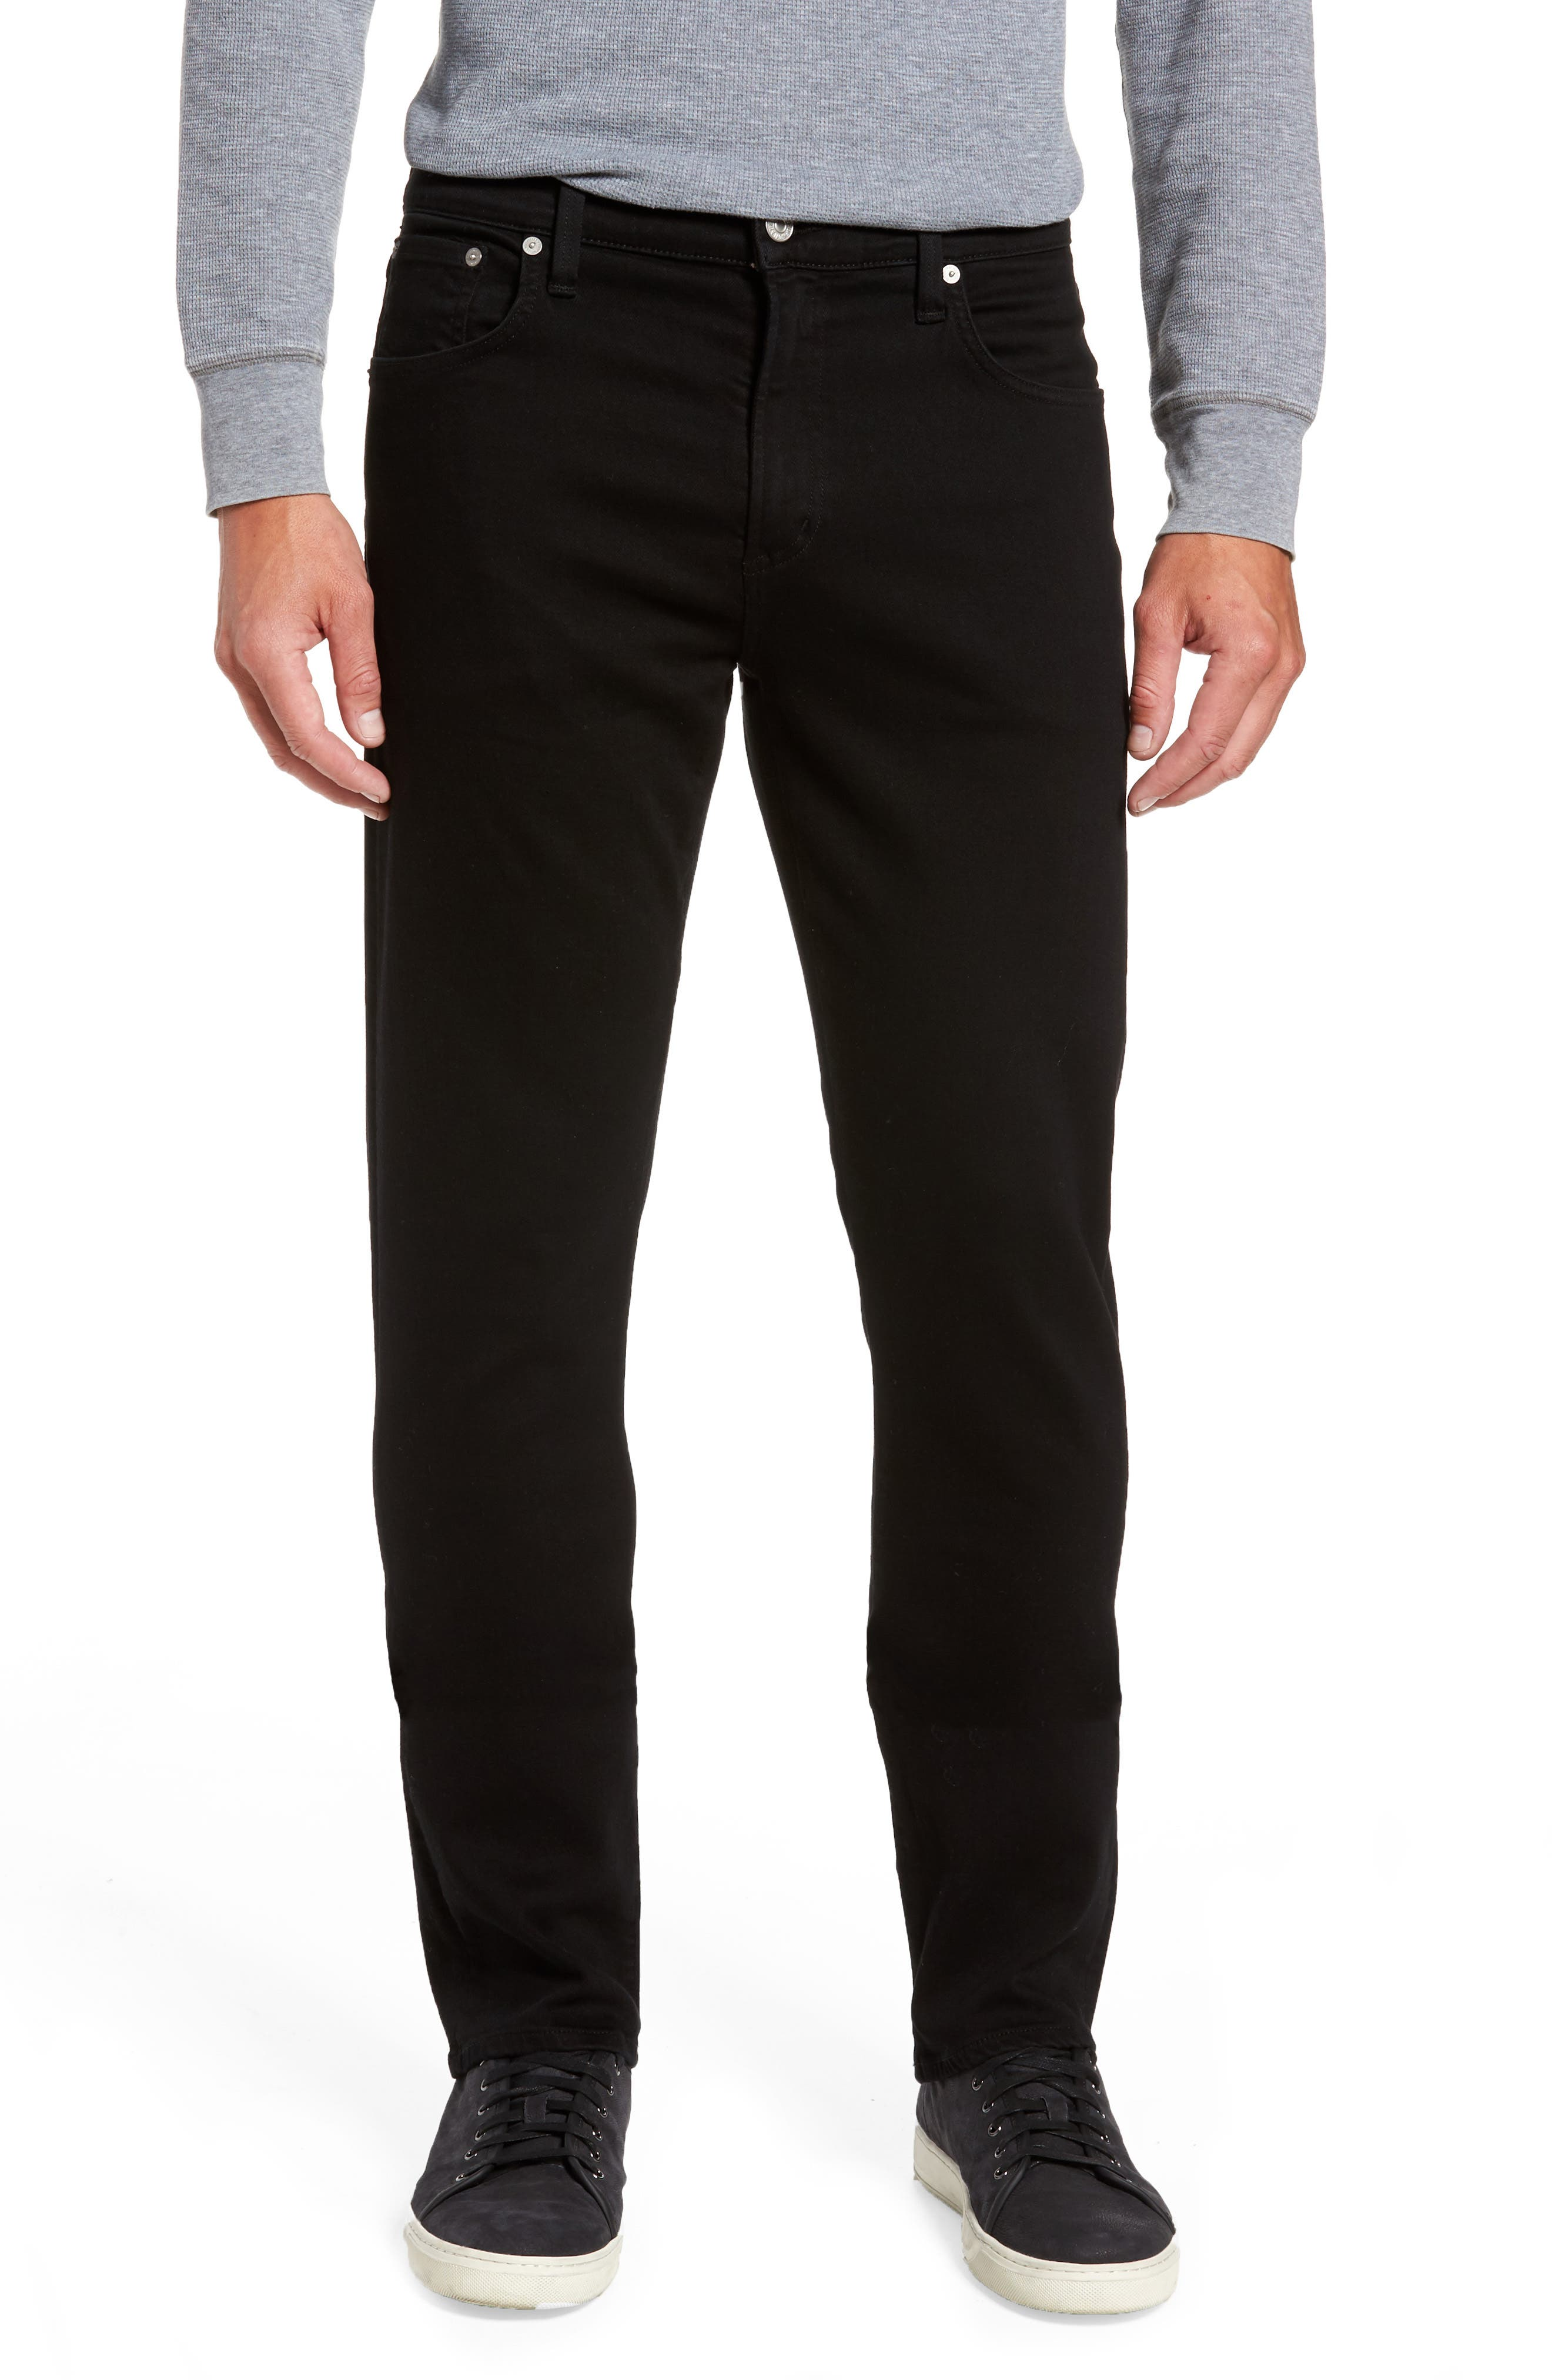 PERFORM - Gage Slim Straight Leg Jeans,                         Main,                         color, PARKER